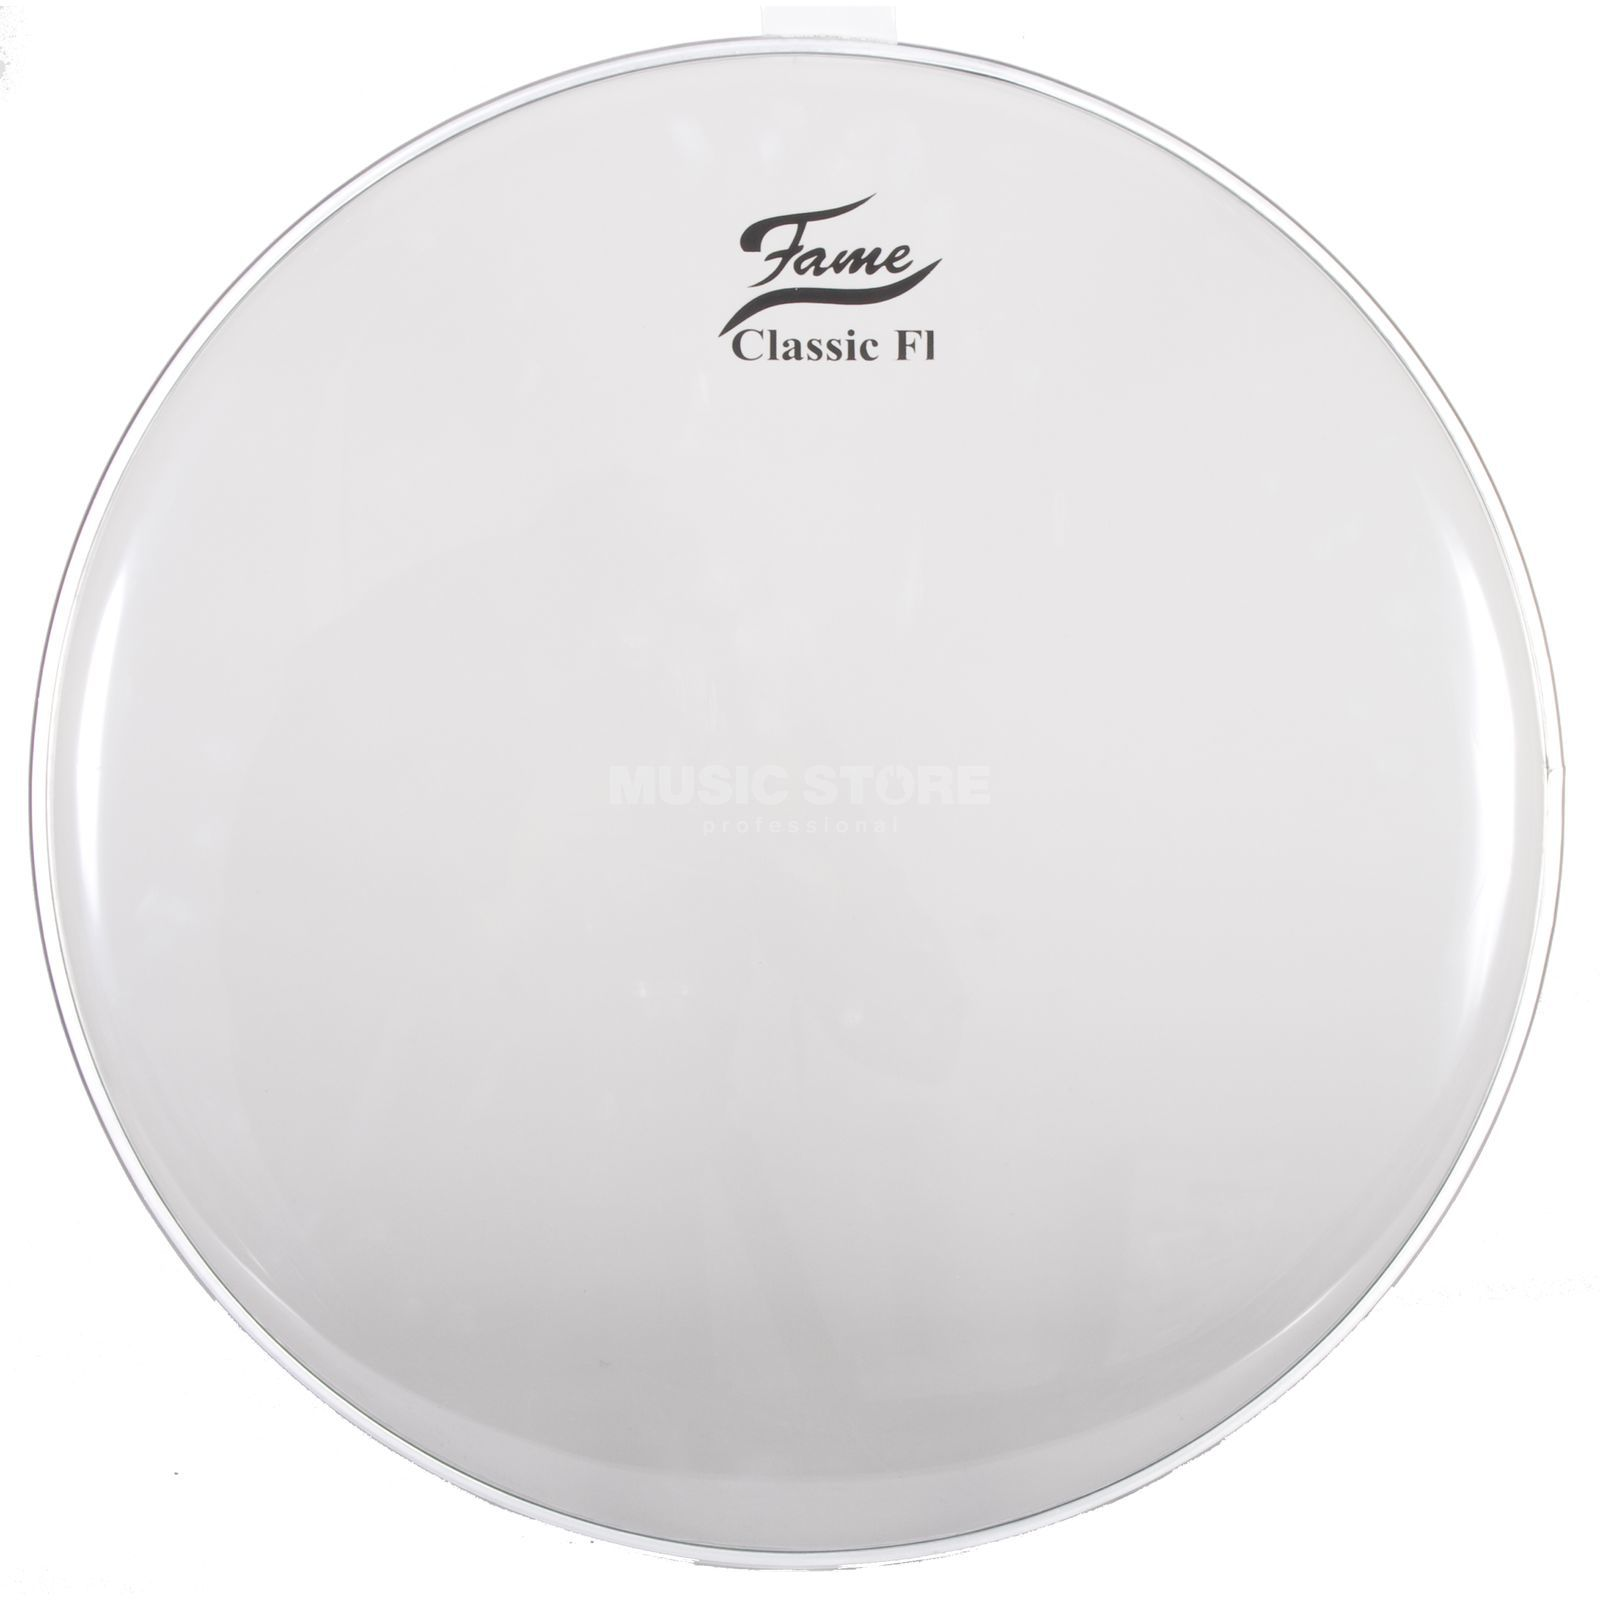 "Fame Bass Drum Head Classic F1 24"", clear Изображение товара"